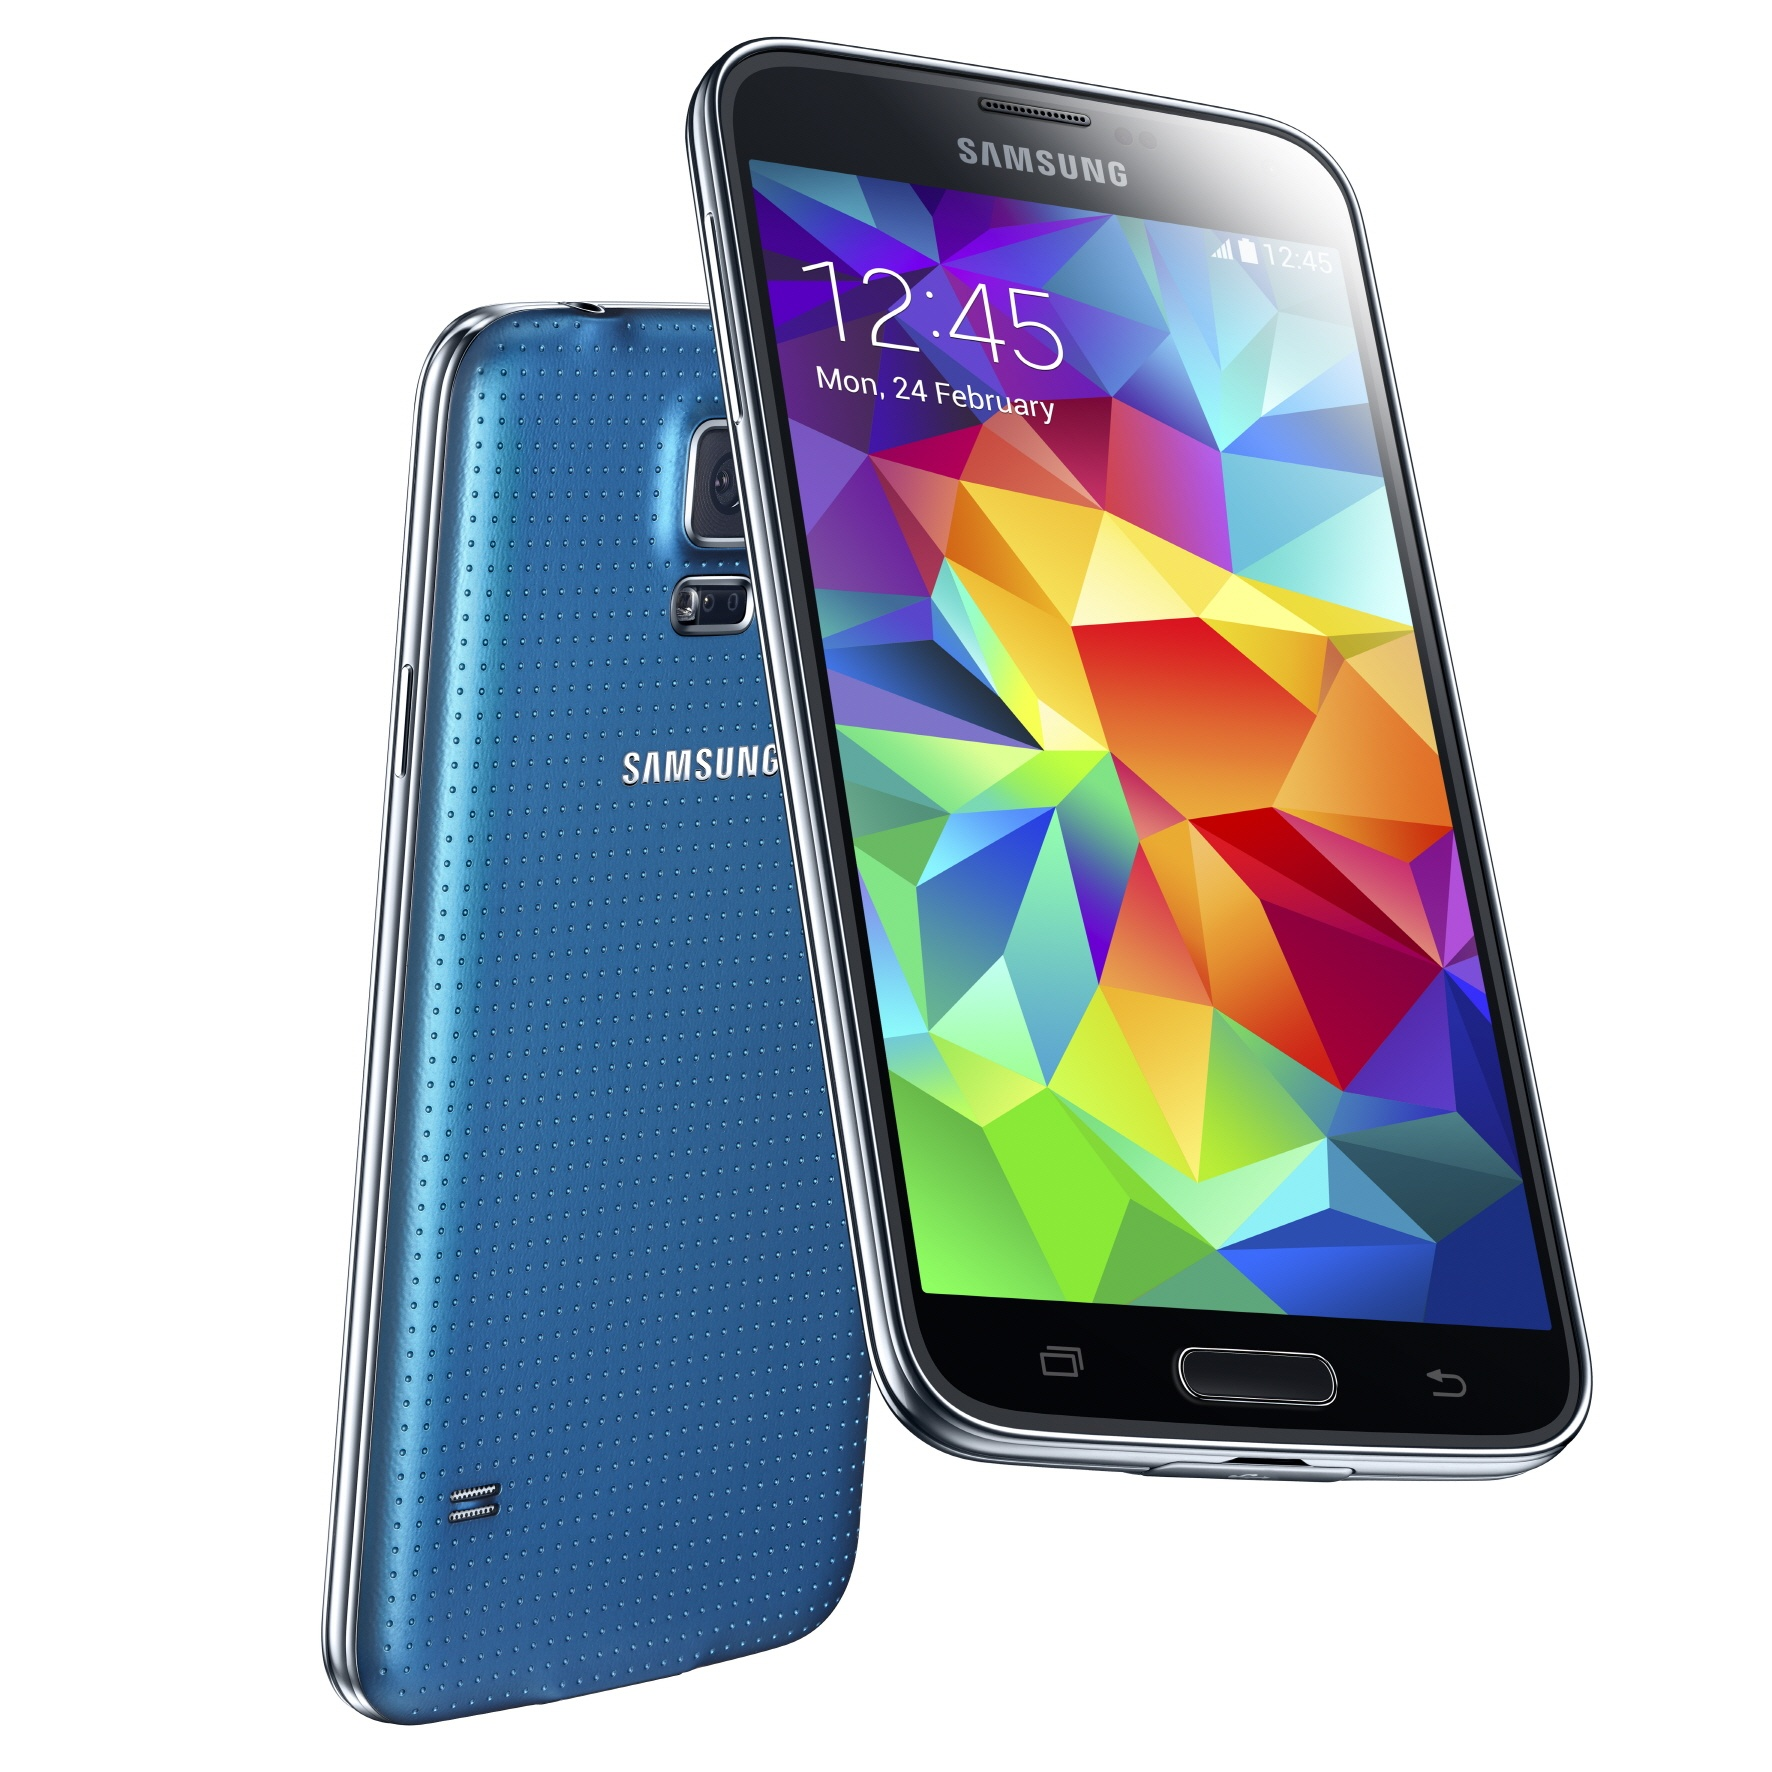 Samsung_Galaxy_S5_SM_G900_Blue_Black_White_Gold_8